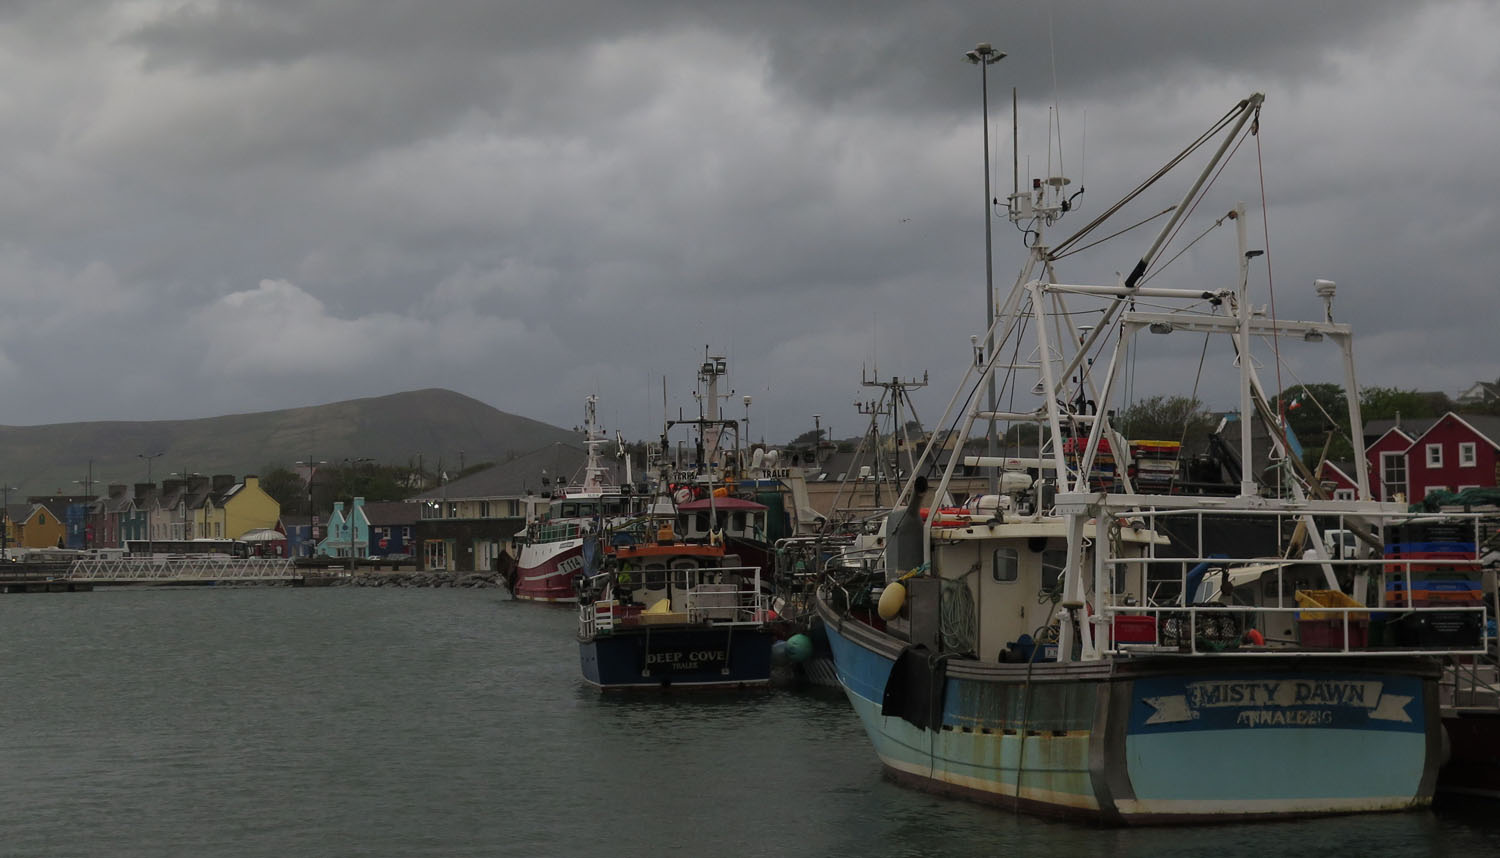 Ireland-Sights-And-Scenery-Dingle-Harbor